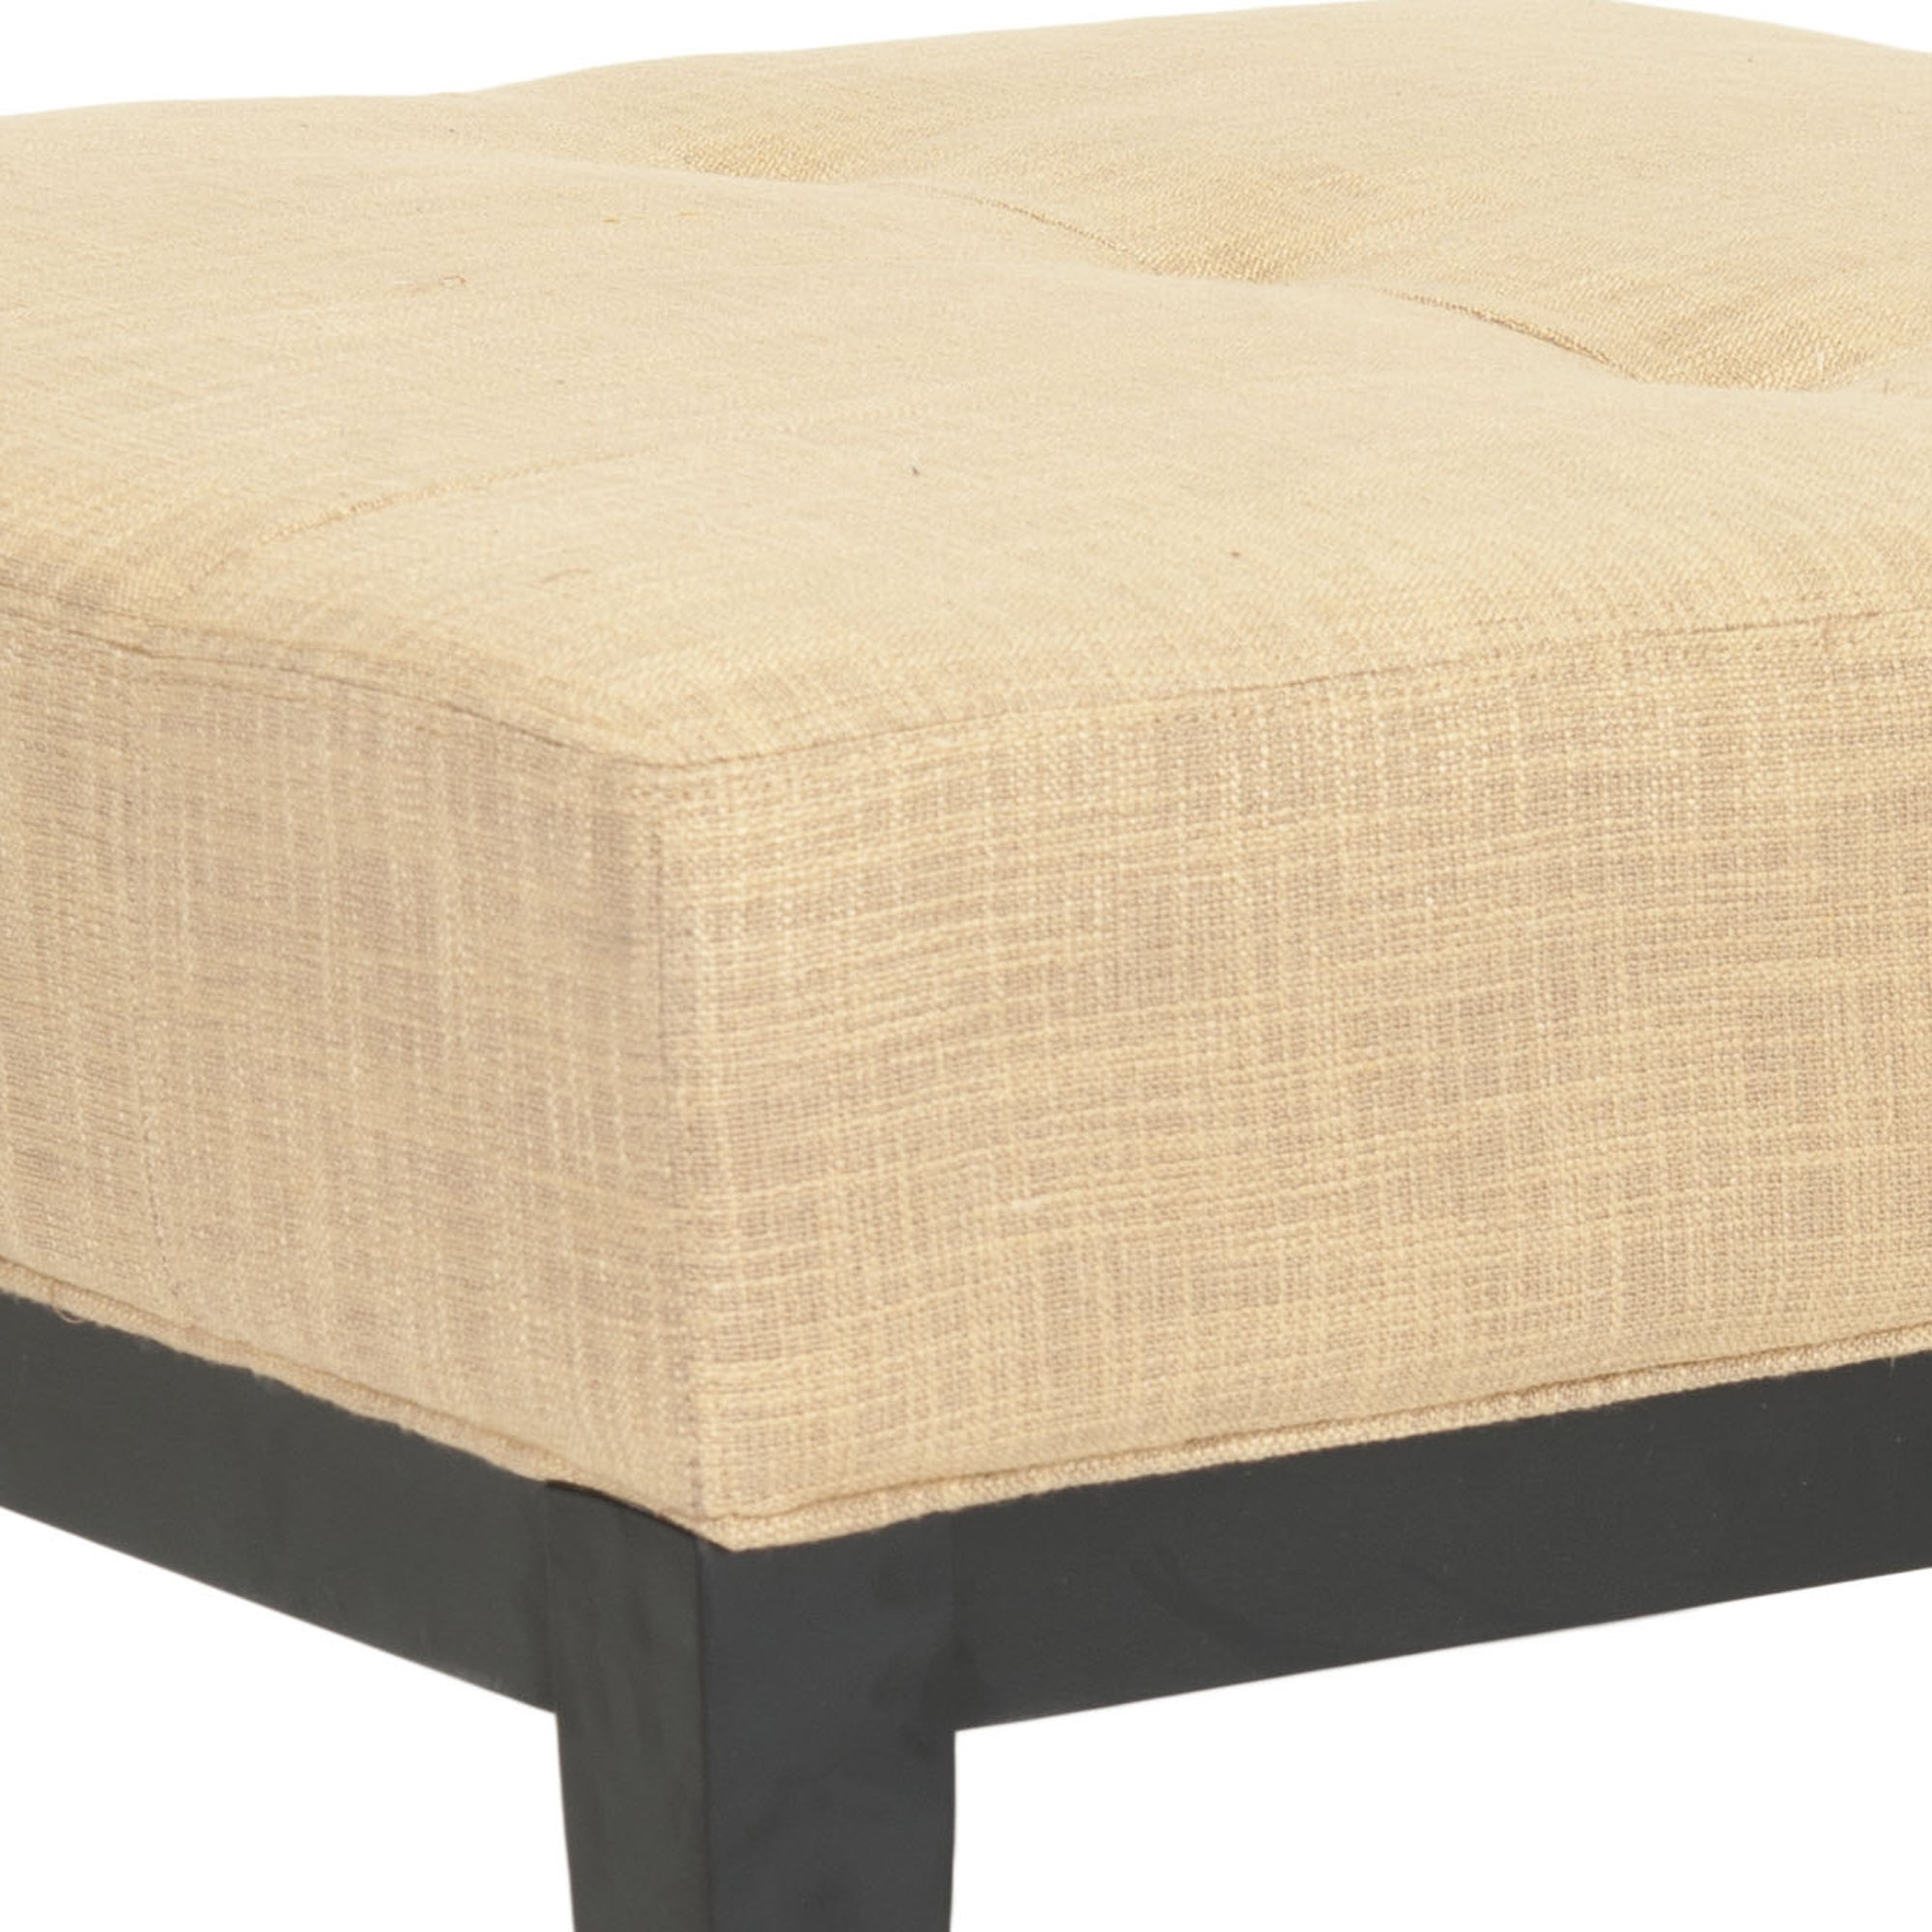 Safavieh Fulton Storage Gold Viscose Square Ottoman   Free Shipping Today    Overstock   14175347